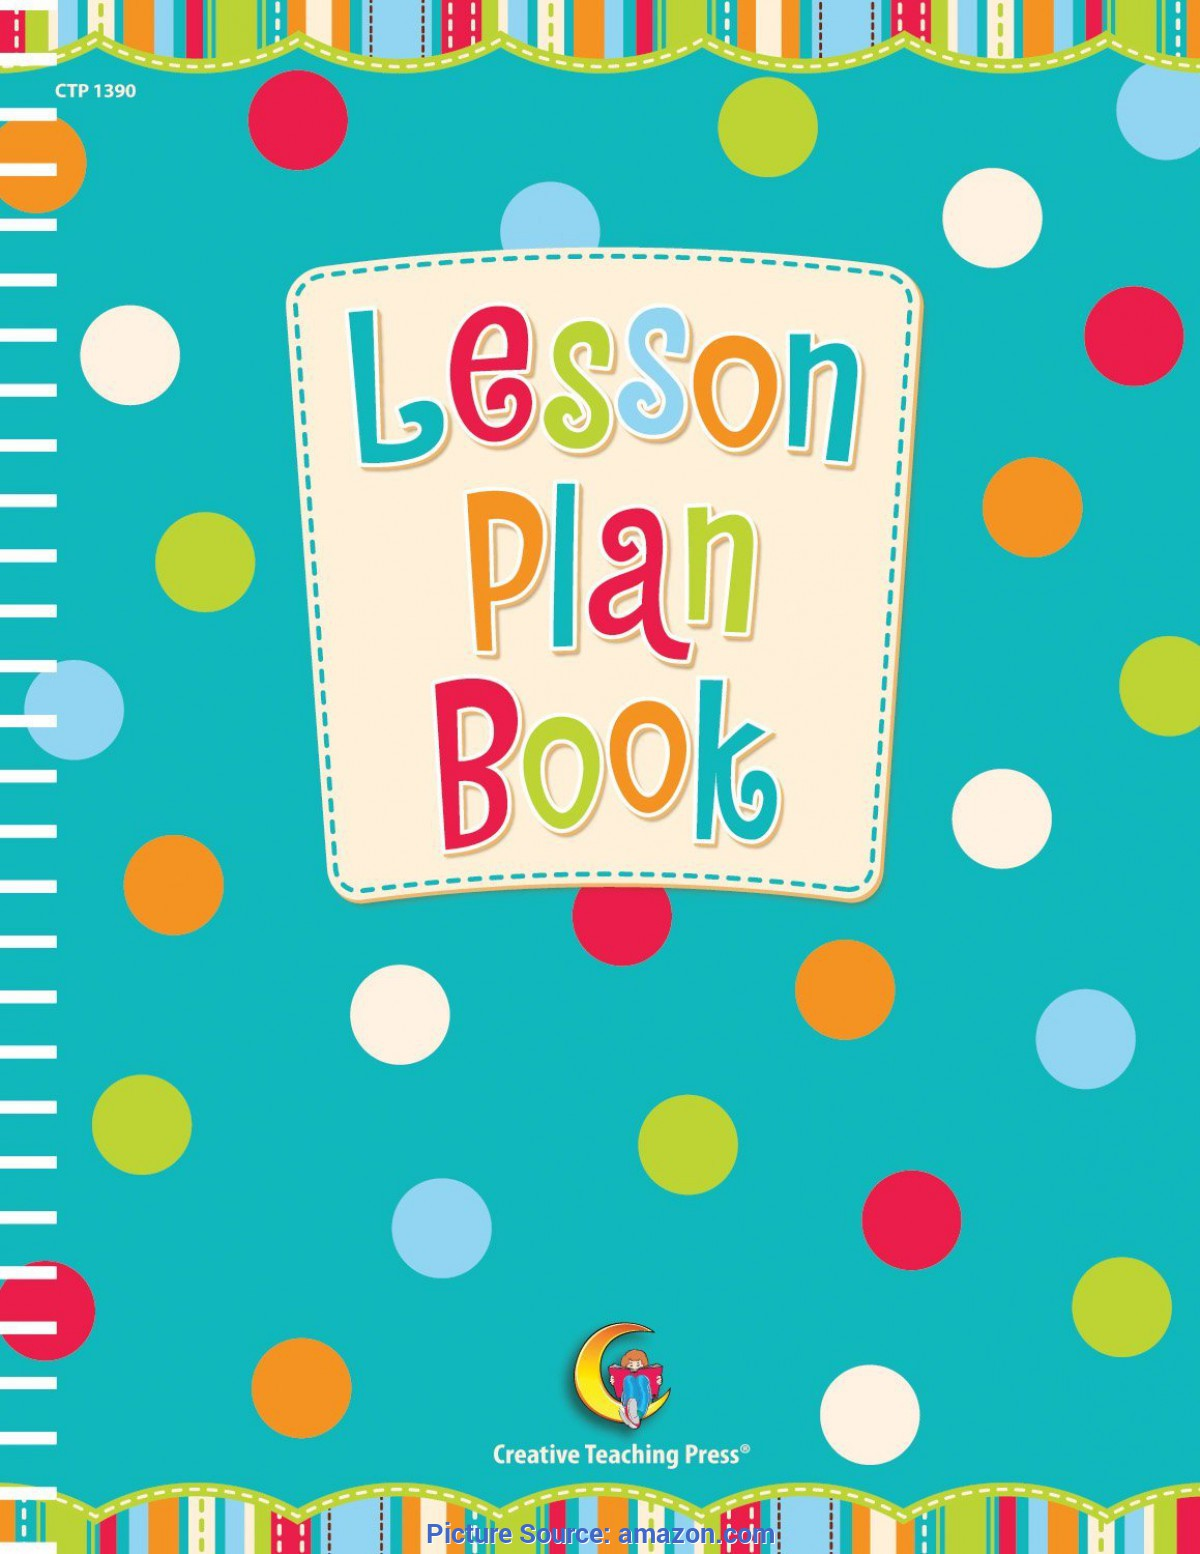 Unusual Lesson Plan Book Creative Teaching Press Amazon.Com: Creative Teaching Press Lesson Plan Book Teacher